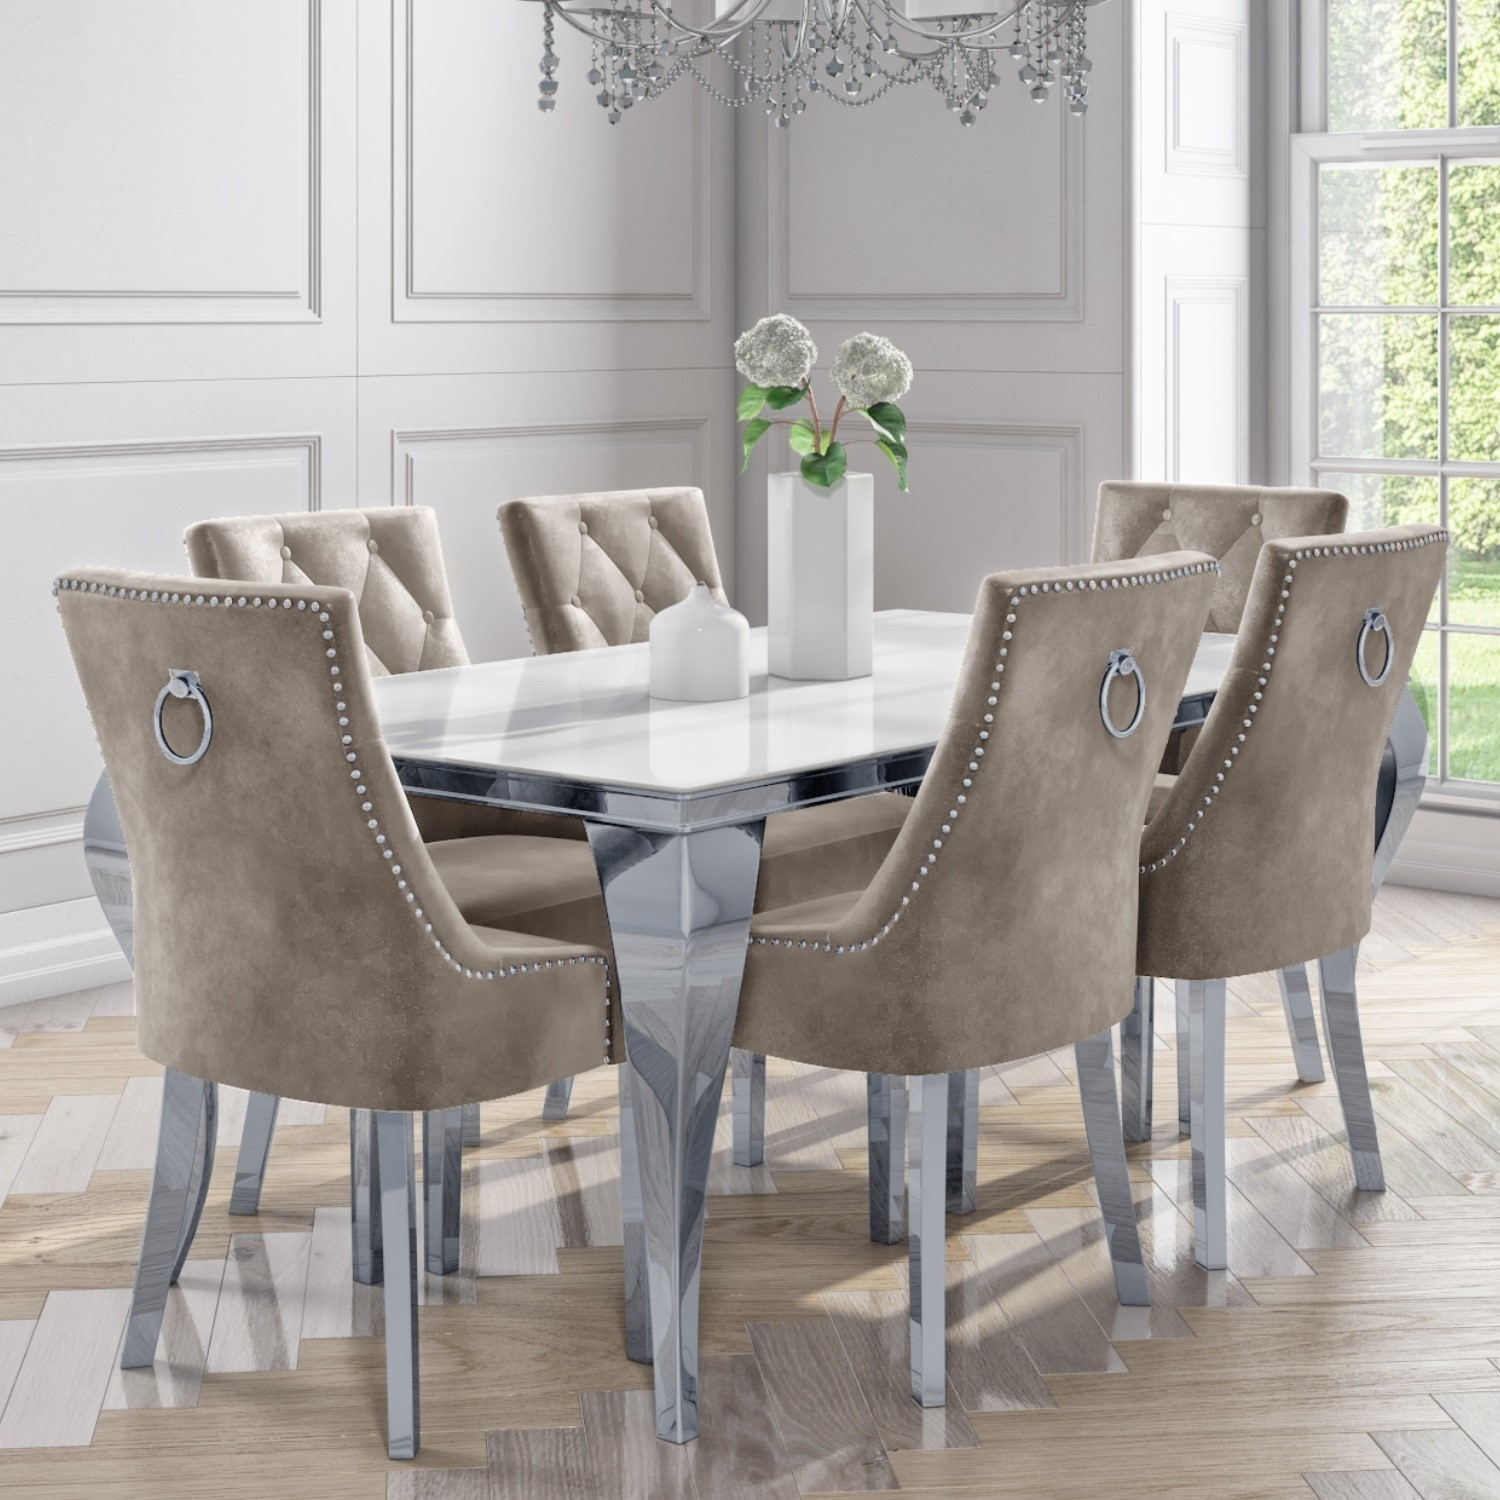 6 Seater Dining Set With White And, Dining Room Table With 6 Chairs White